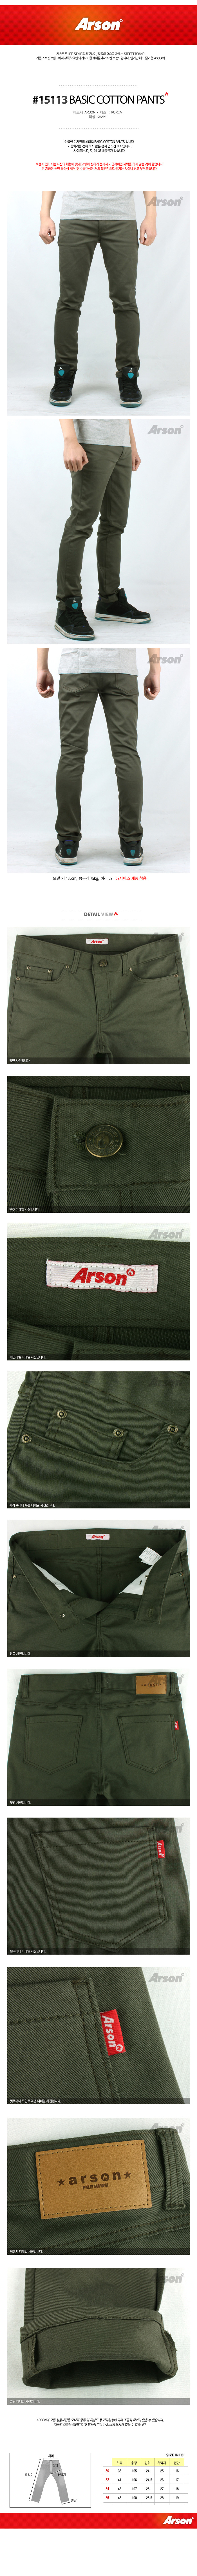 [ ARSON ] [Arson] ARSON GENUINE/15113 BASIC COTTON PANTS (KHAKI))/men\'s cotton pants/cotton pants/ARSON cotton pants